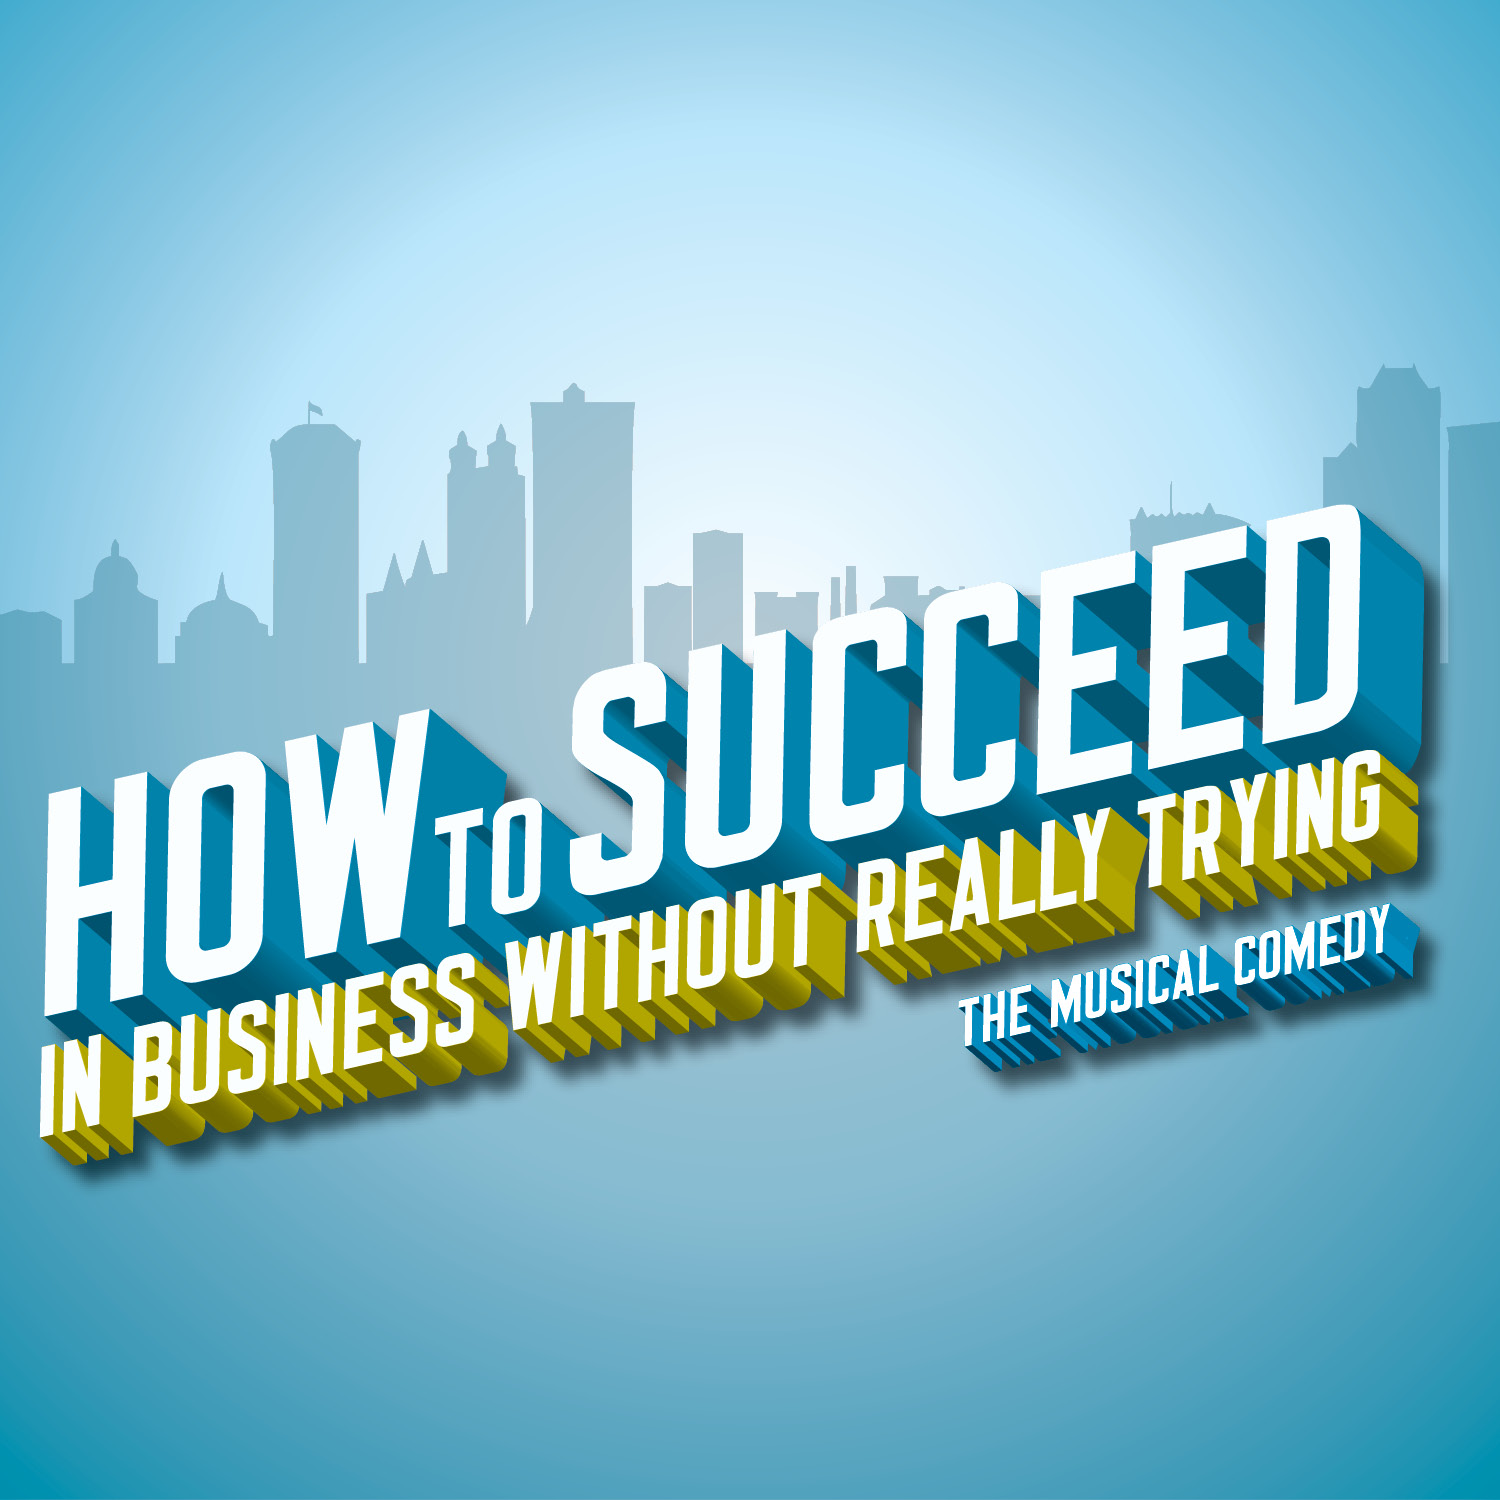 How to succeed in business 54